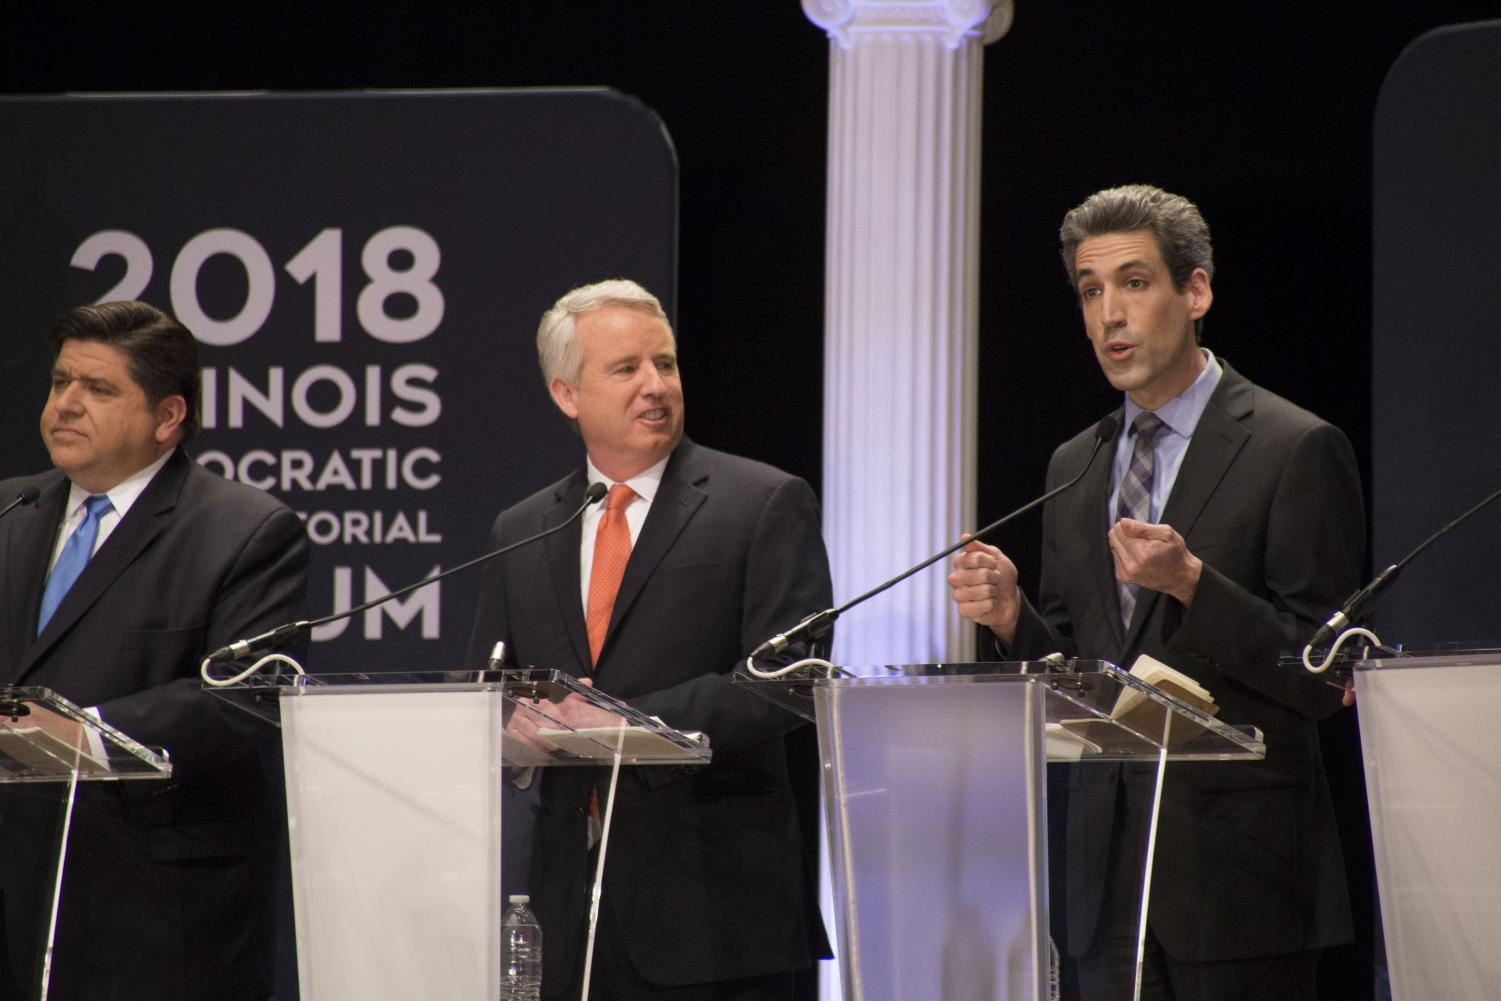 Billionaire and front-runner candidate for governor JB Pritzker (left), is closely followed by Chris Kennedy (middle) and State Senator Daniel Biss (right). Personal attacks have been a big part of the race.